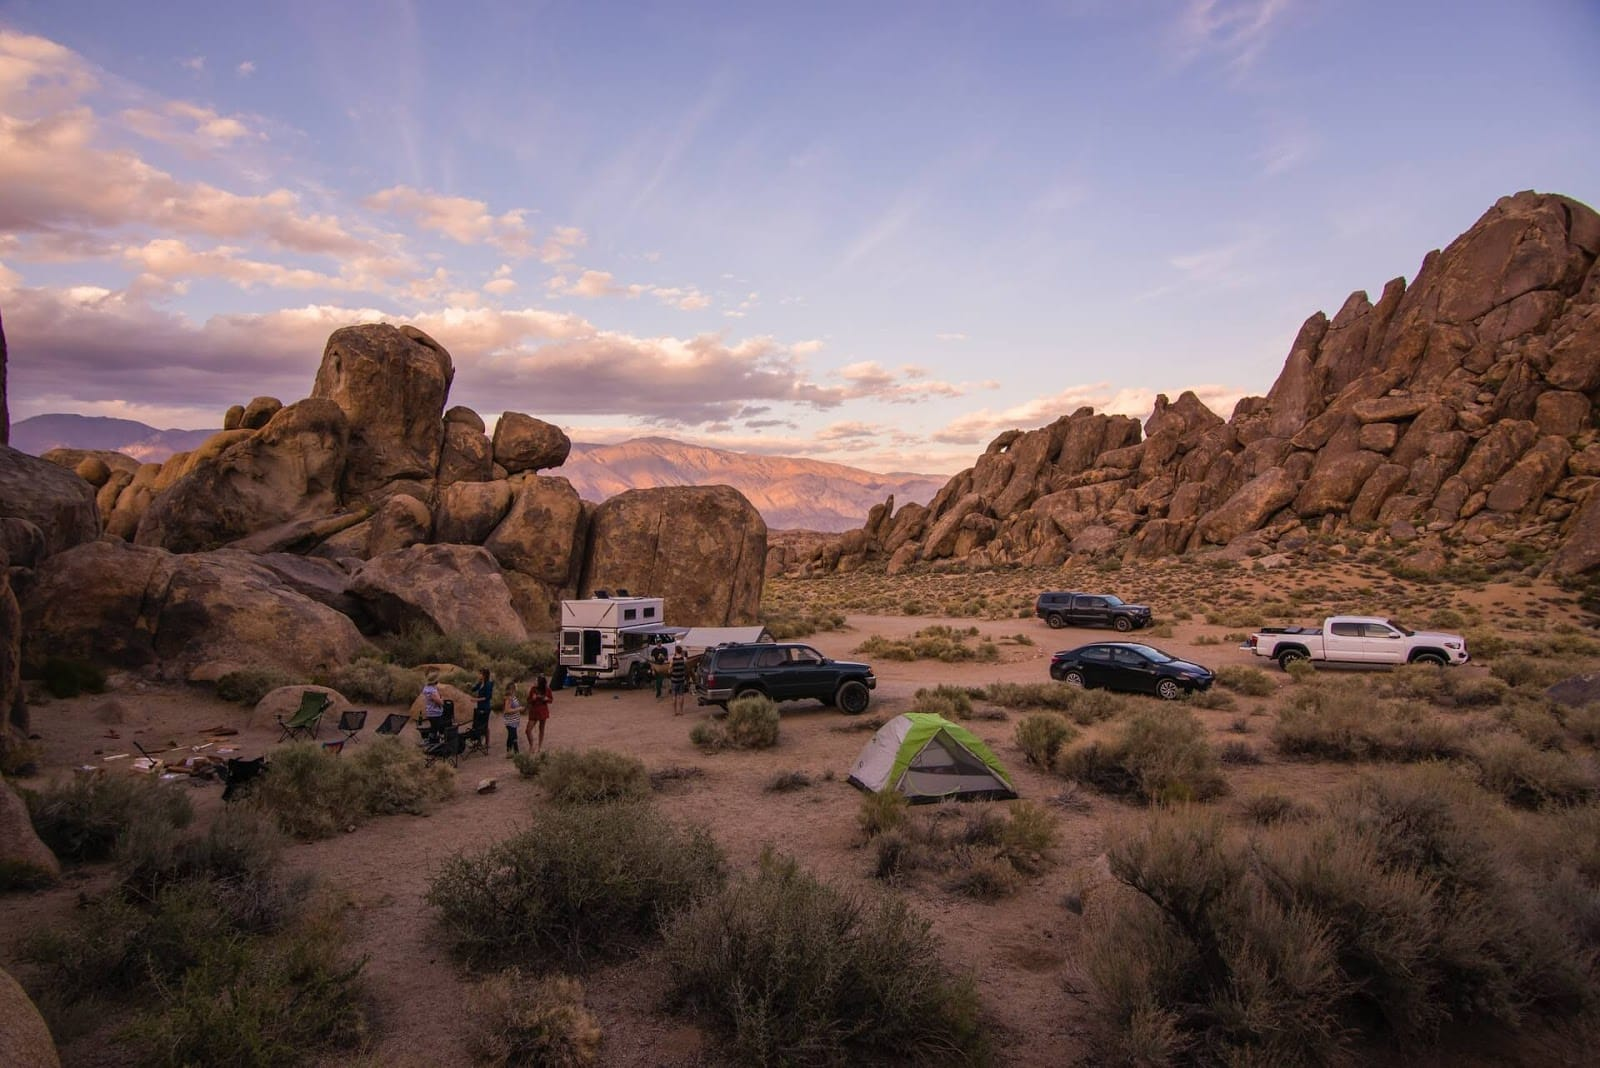 Several tents, cars and people in a desert environment at sunset.